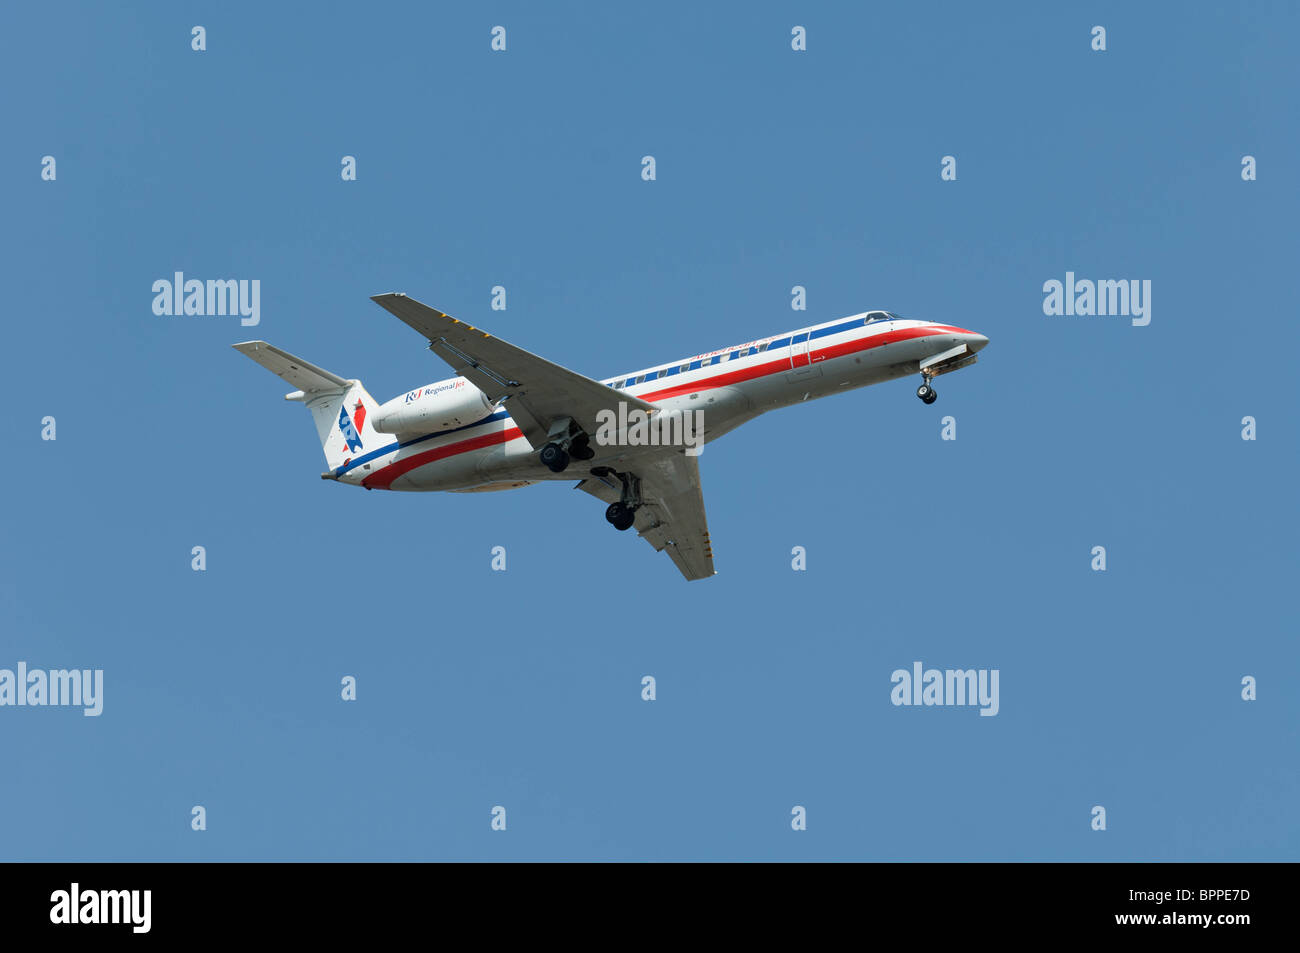 American Eagle Embraer ERJ-135LR on final approach to a runway. - Stock Image